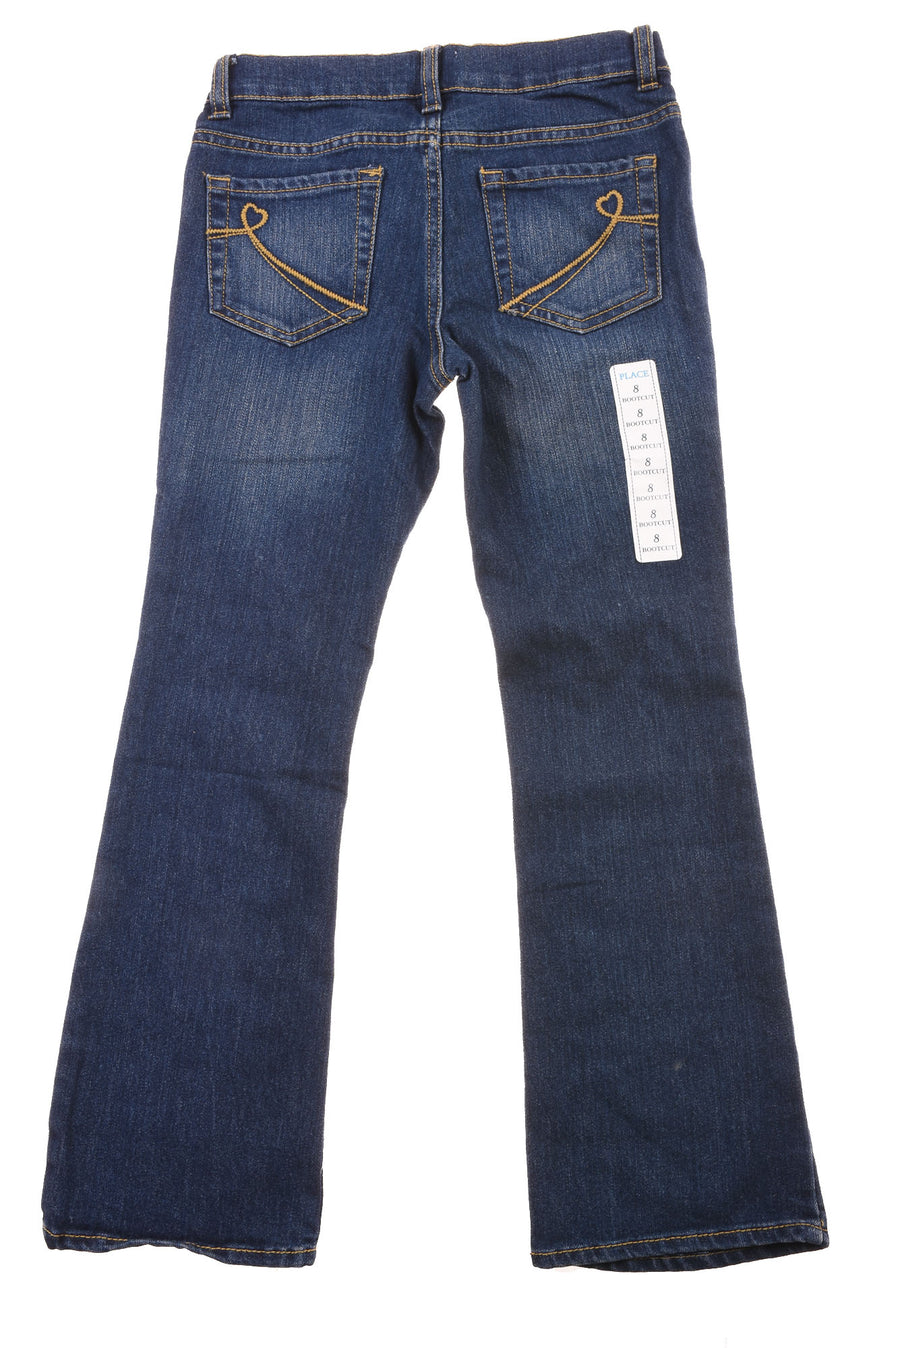 NEW The Children's Place Girl's Jeans  8 Blue